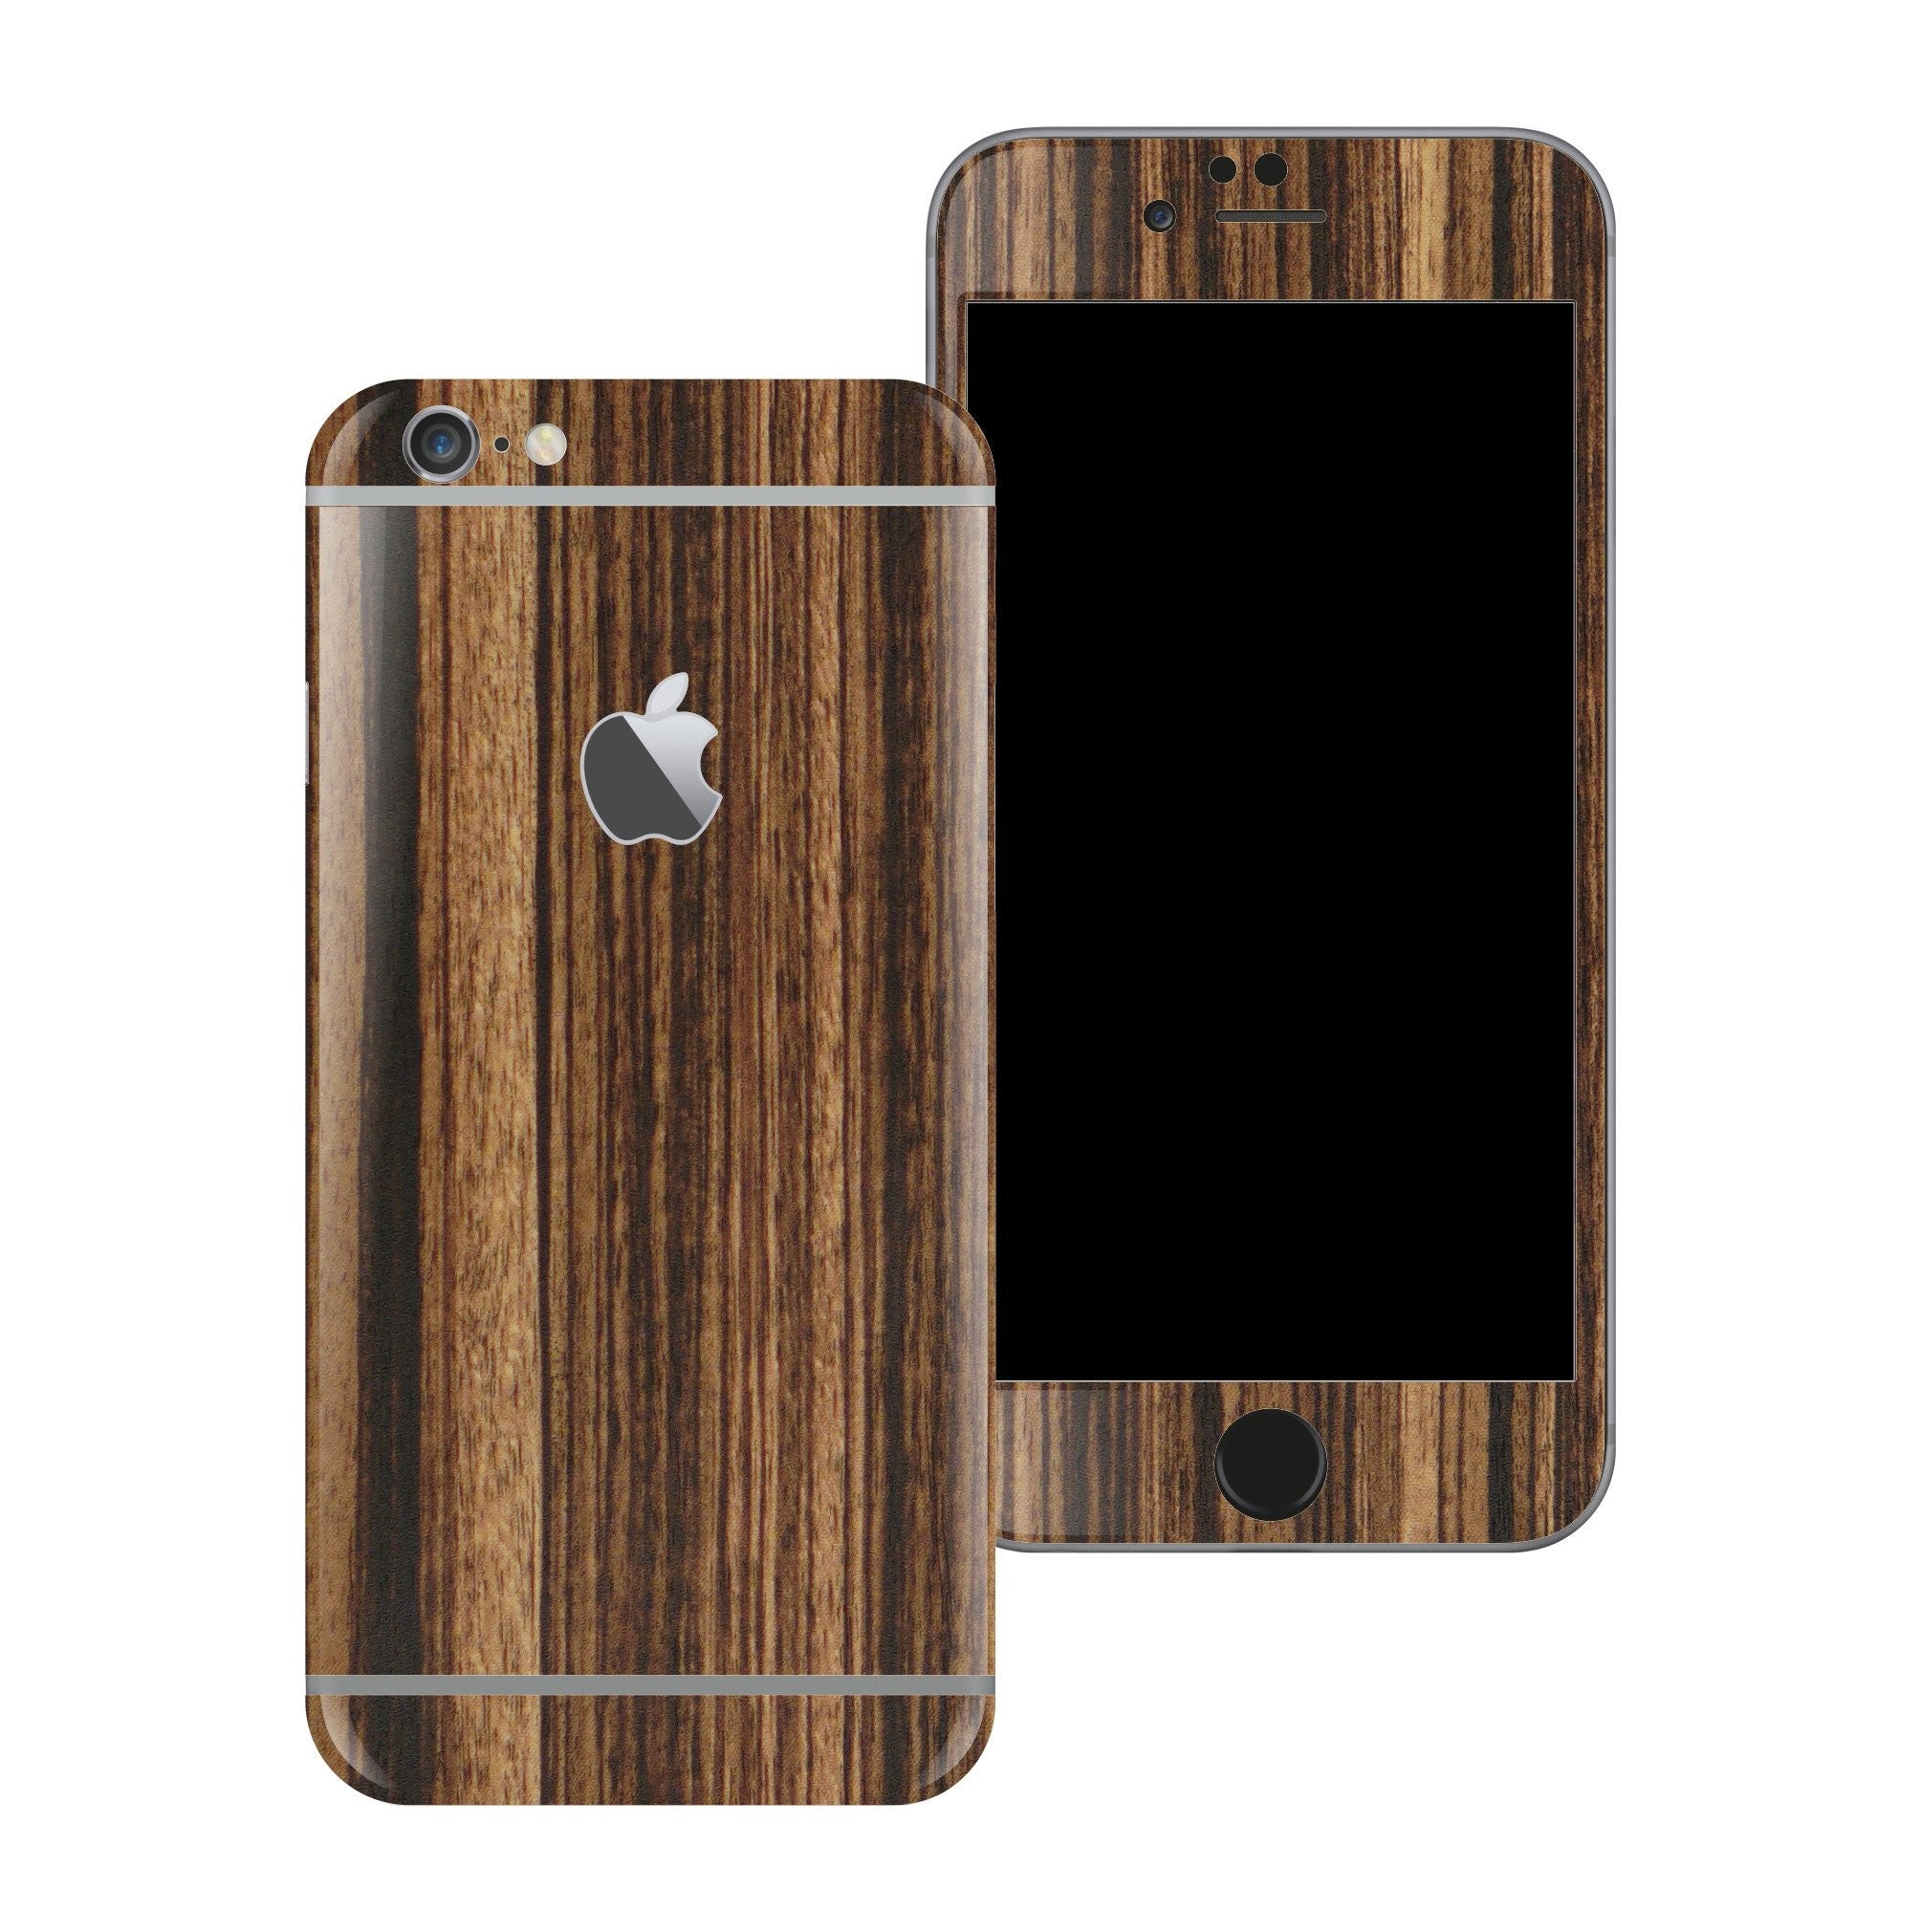 iPhone 6 Plus Luxuria Zebrano Wood Wooden Skin Wrap Decal Protector | EasySkinz